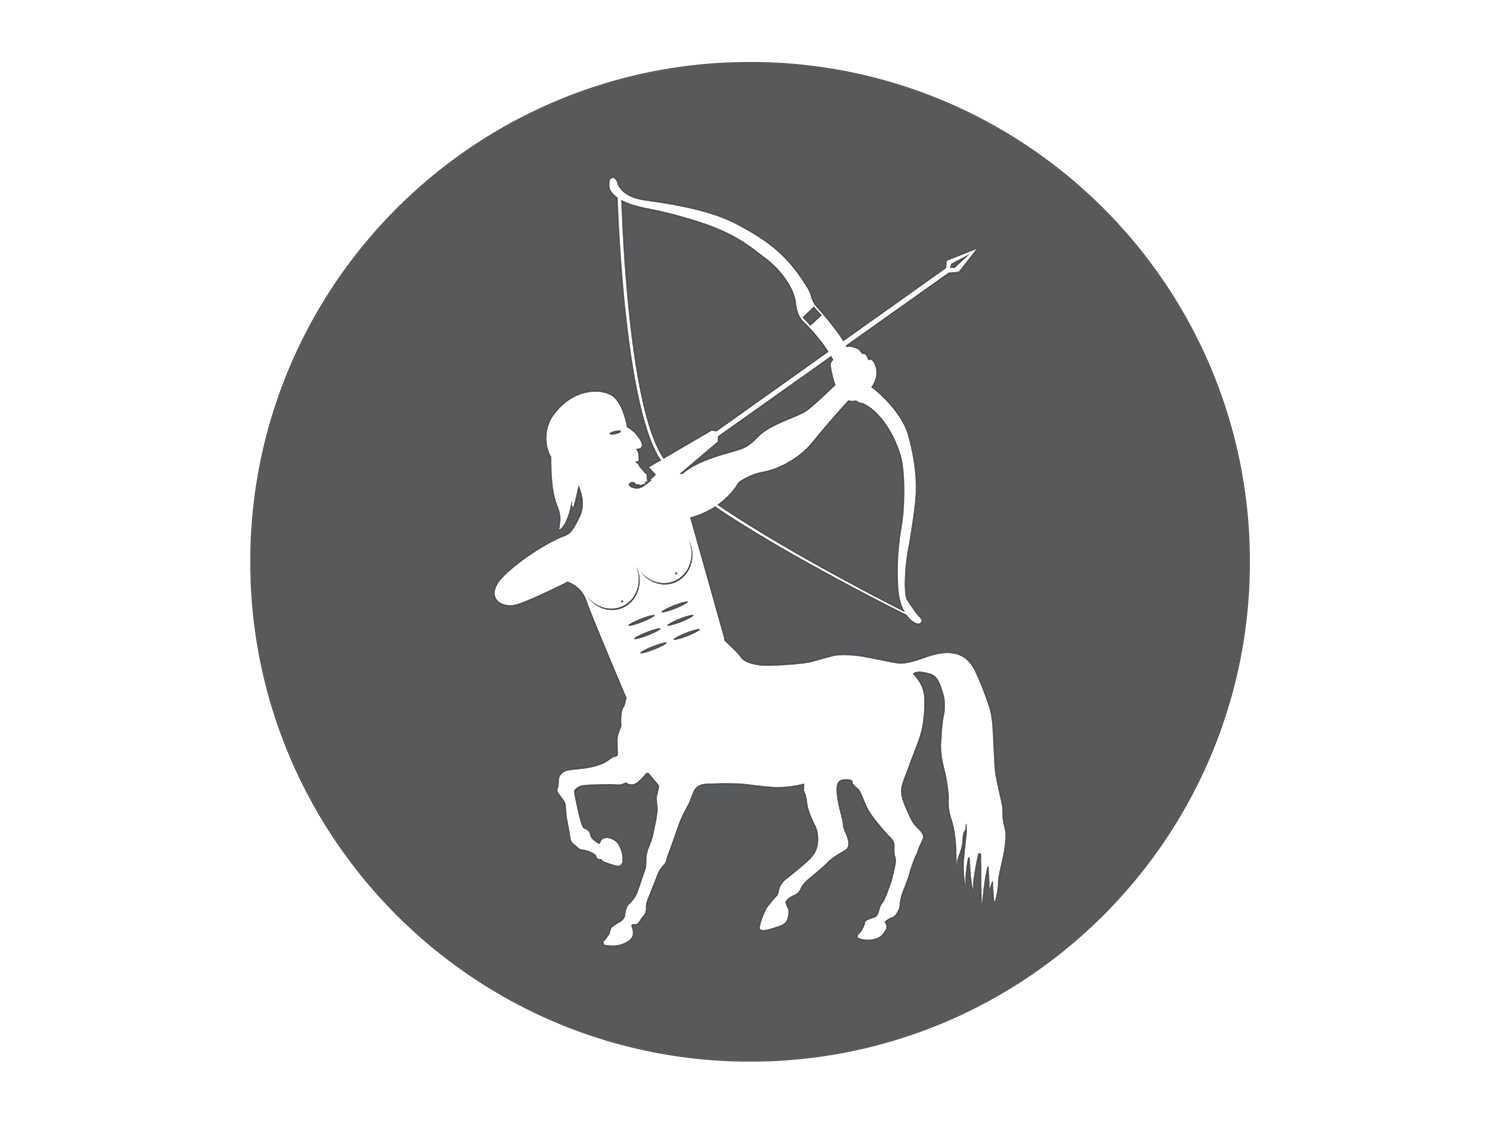 Sagittarius the Archer - The Adventurous Zodiac - Astronlogia